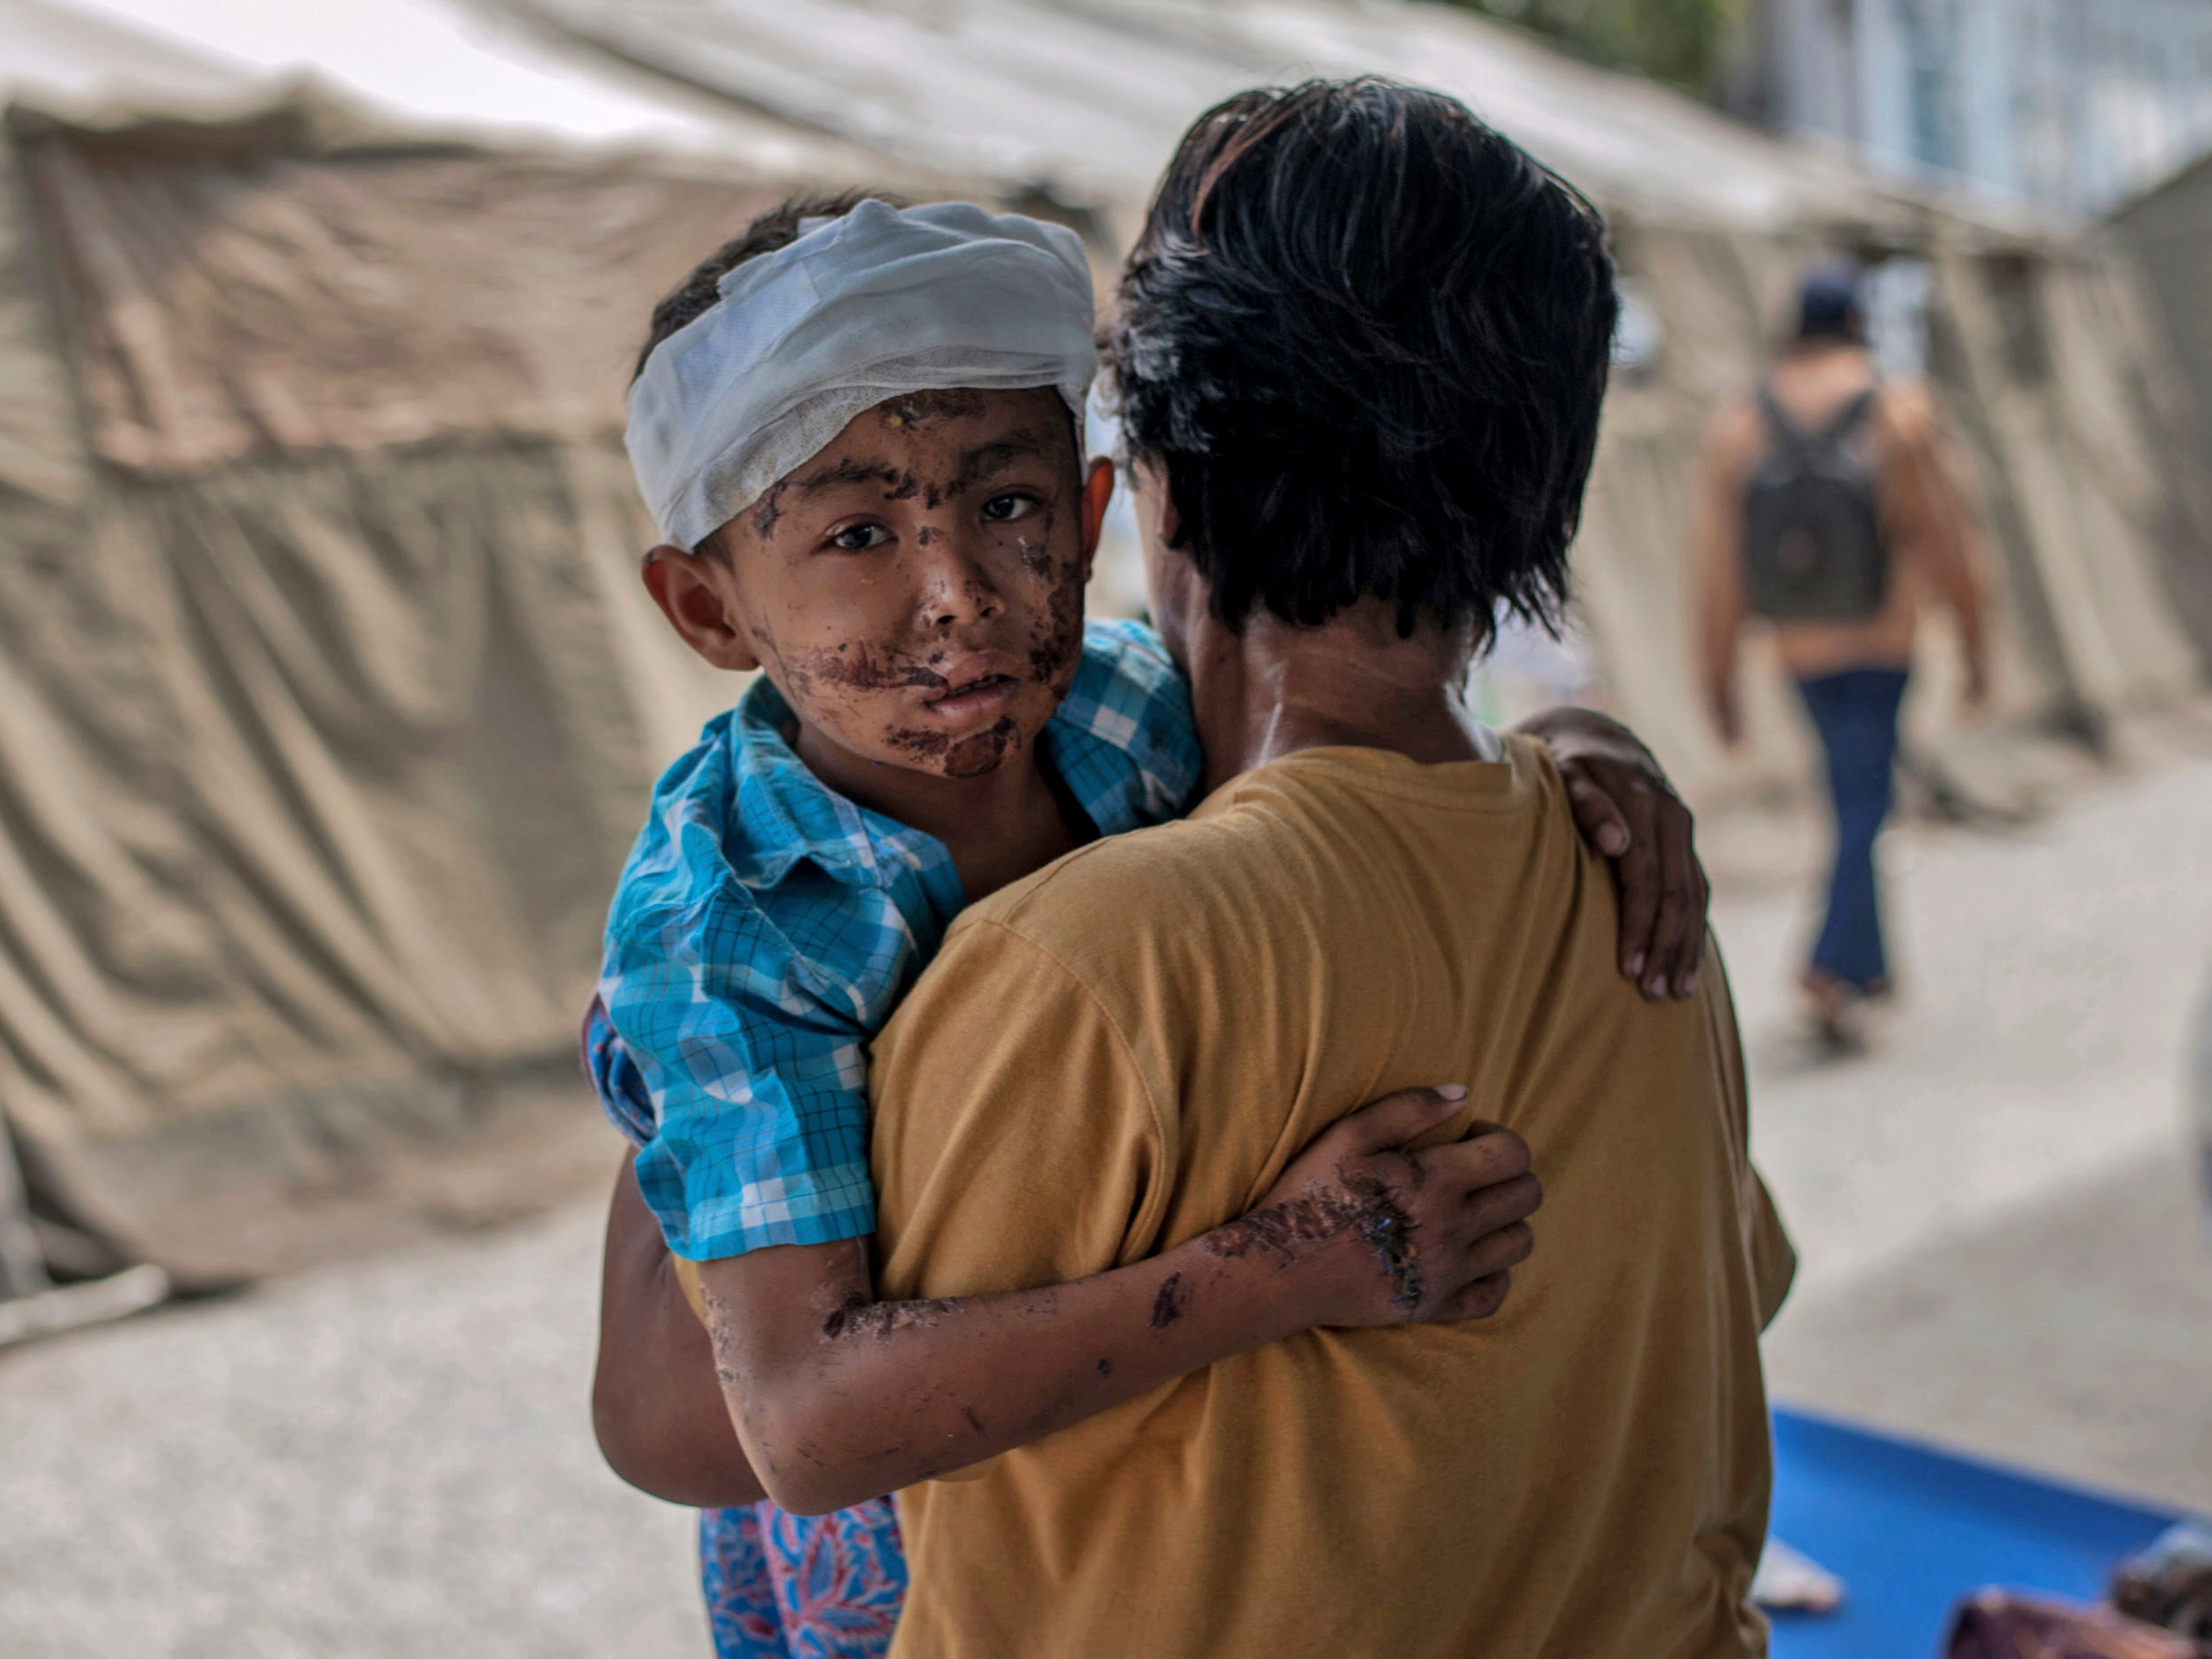 A boy injured during the tsunami is carried by his relative at a makeshift hospital in Palu, Central Sulawesi, Indonesia, Oct. 4, 2018.